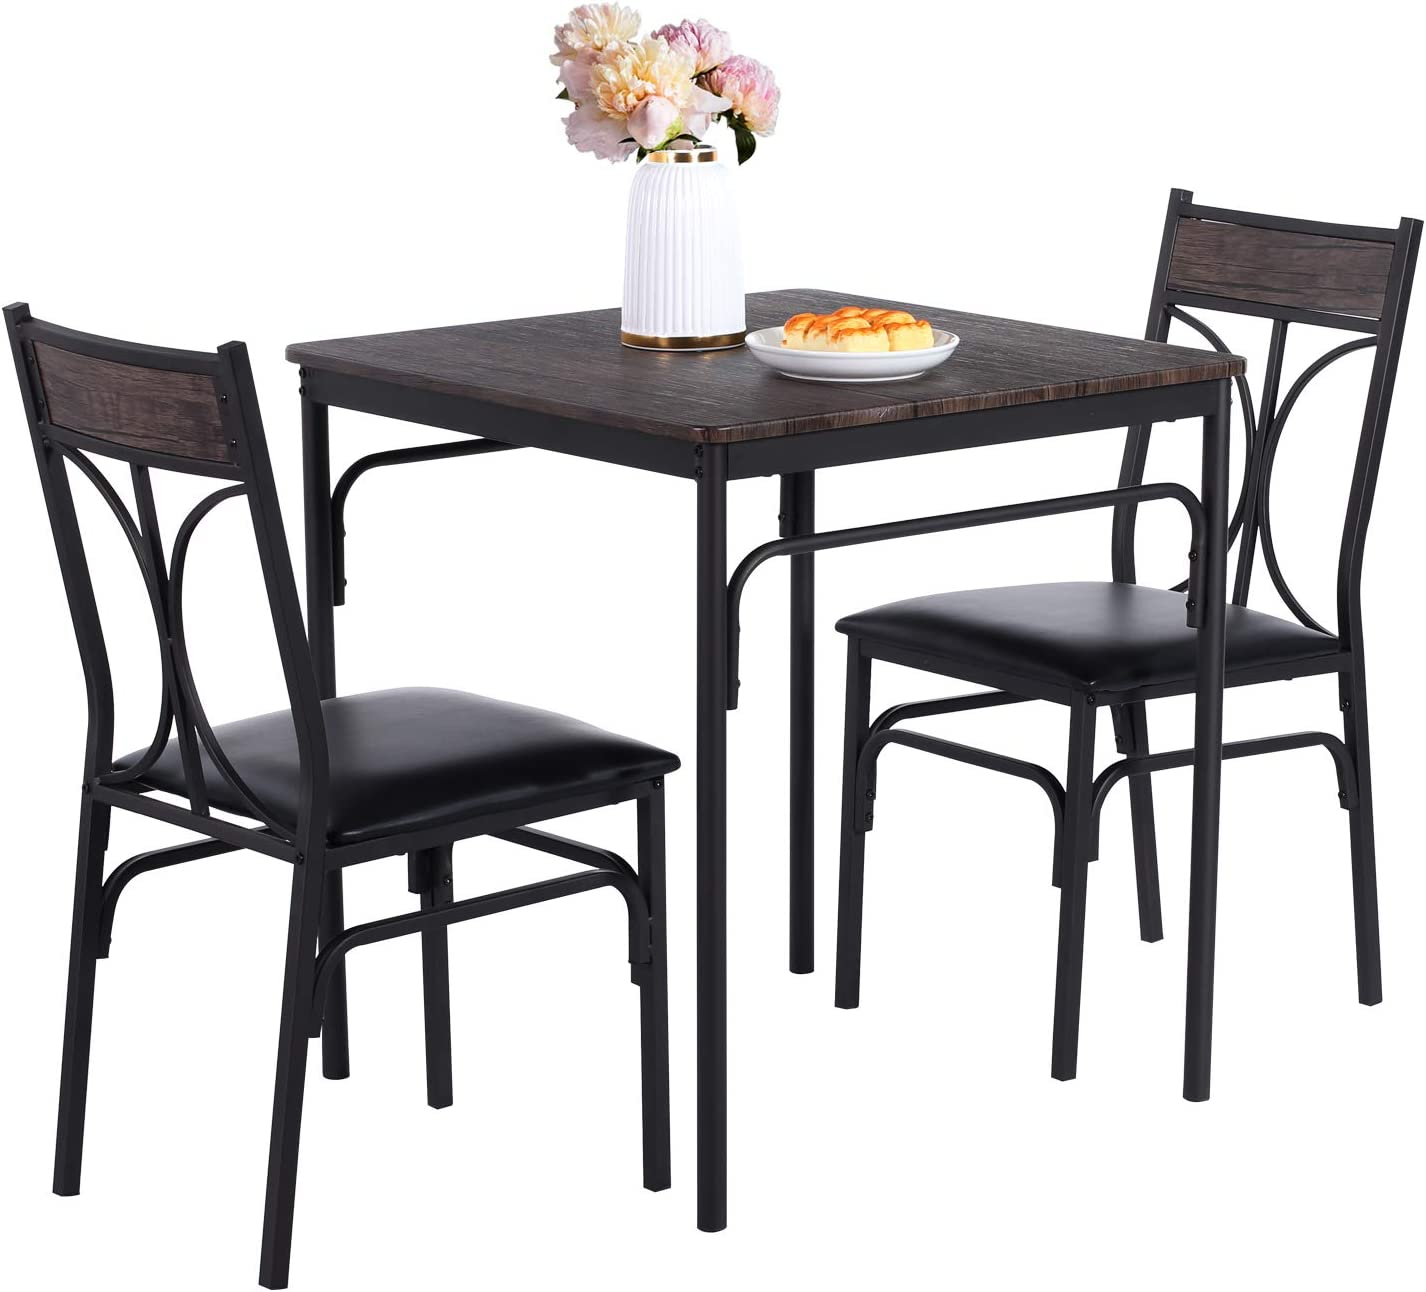 Buy VECELO 9 Piece Dining Room Kitchen Table and Pu Cushion Chair ...